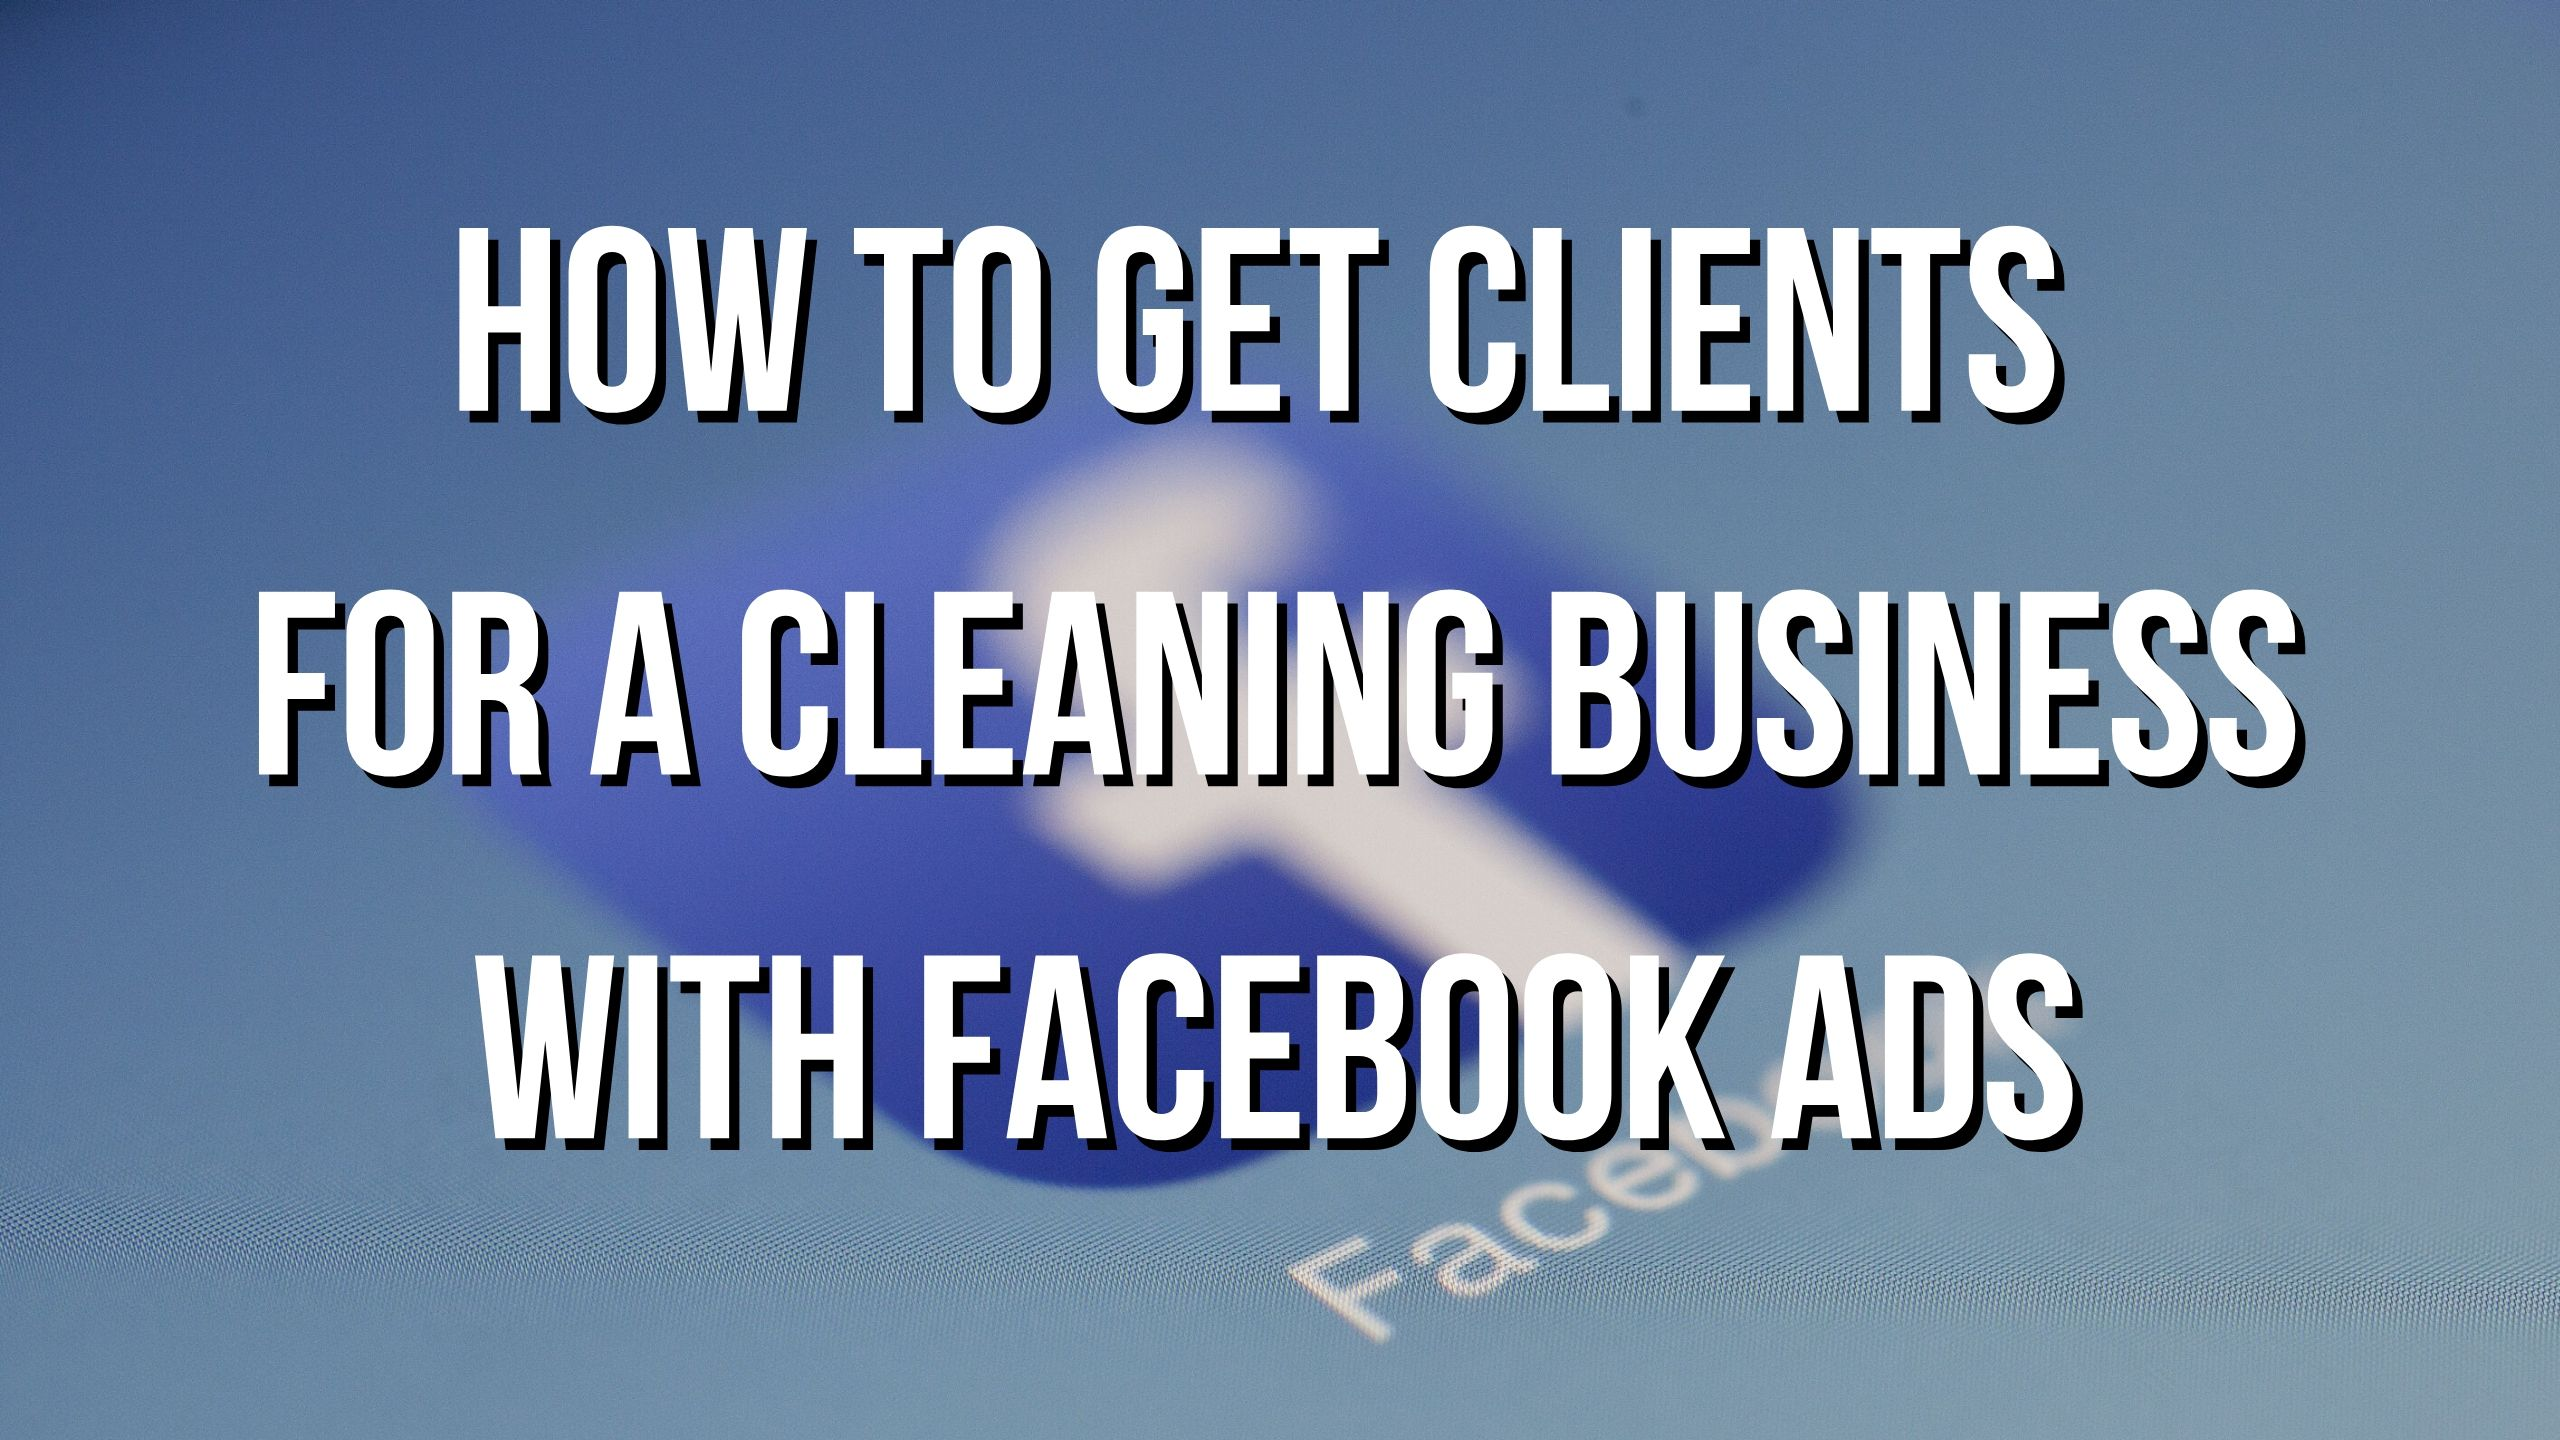 How To Get Clients For A Cleaning Business With Facebook Ads